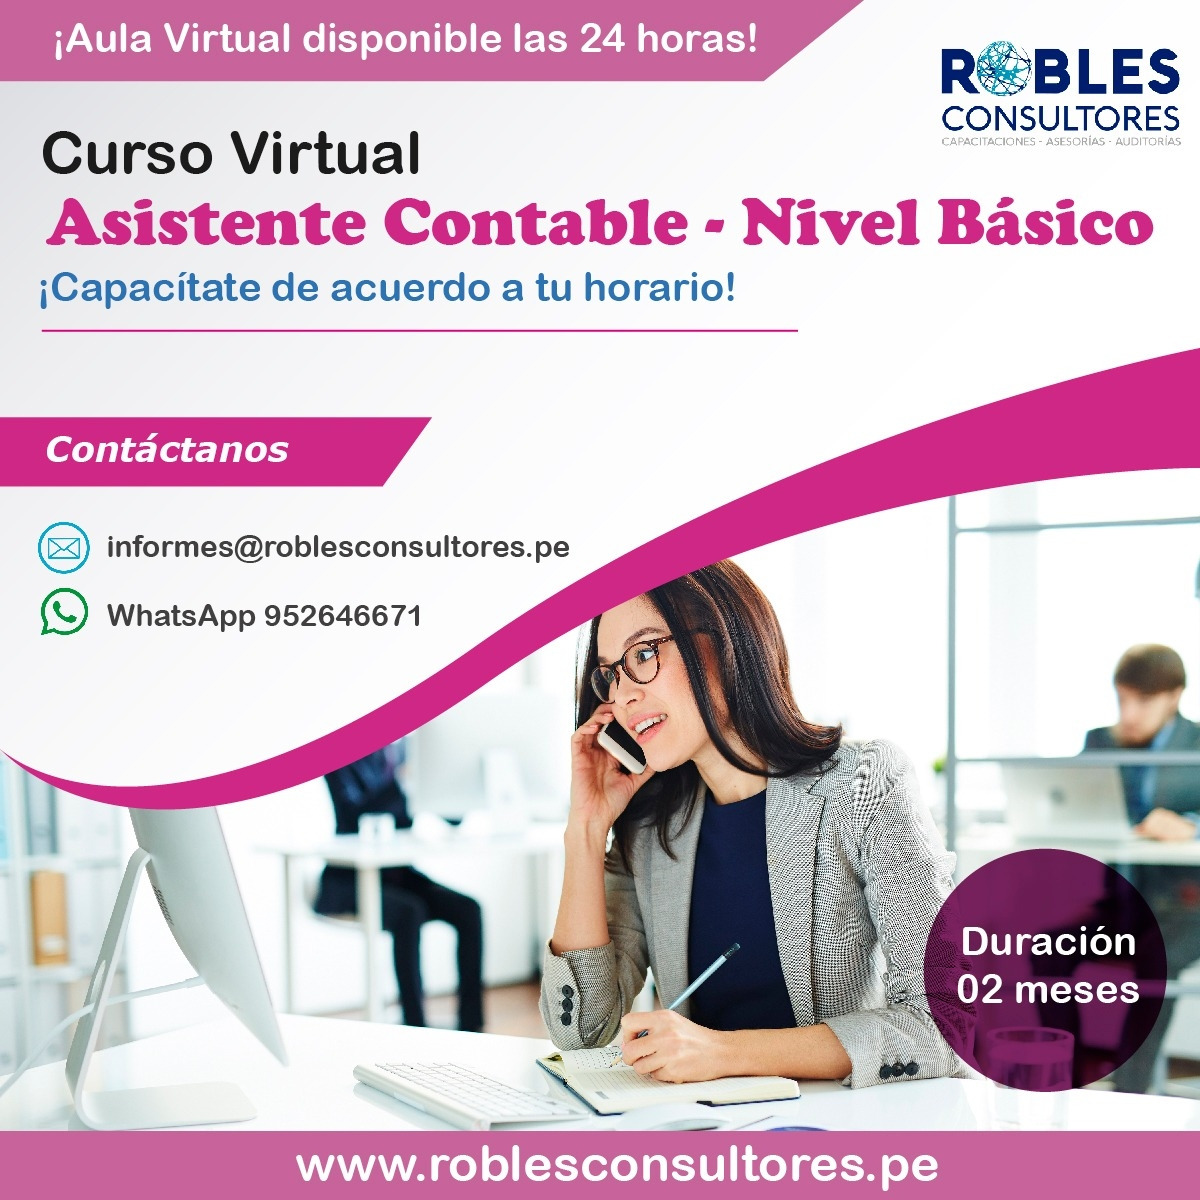 curso-virtual-asistente-contable-nivel-basico